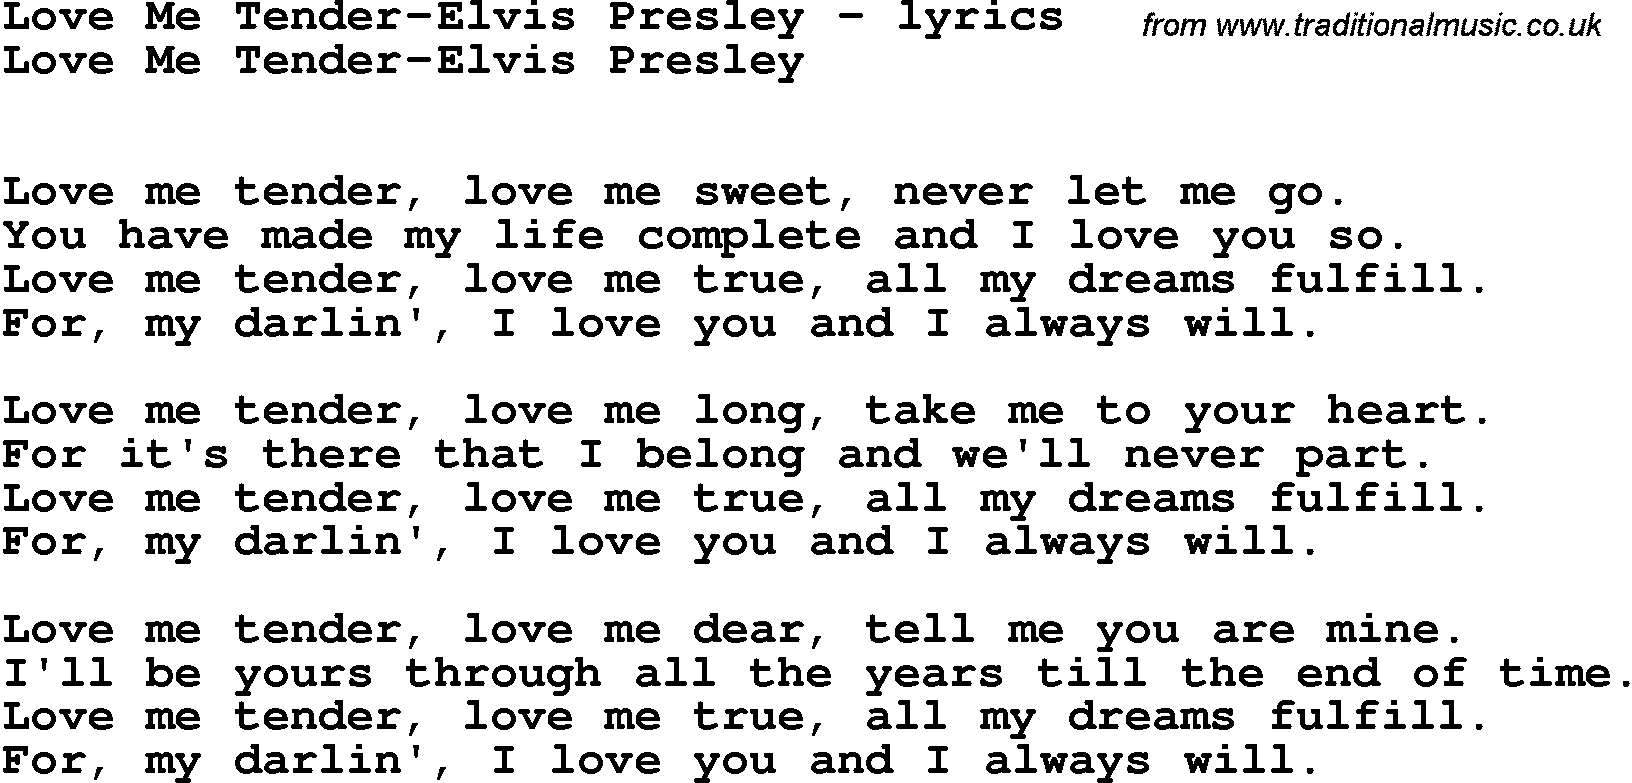 love song lyrics for love me tender elvis presley. Black Bedroom Furniture Sets. Home Design Ideas